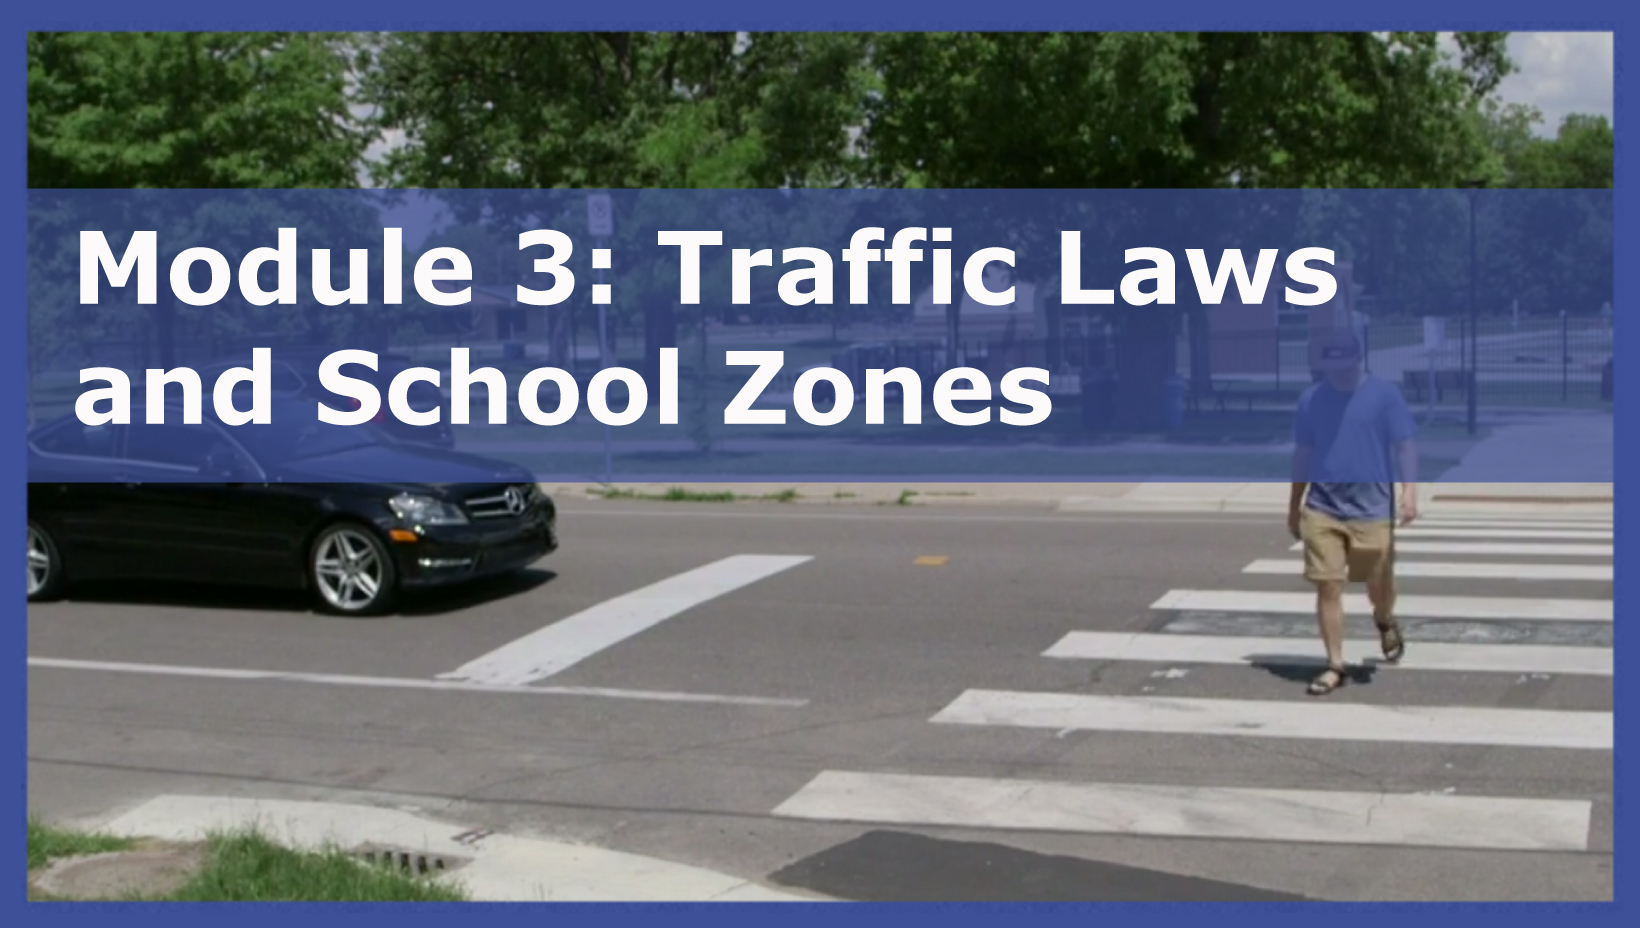 Photo of Module 3: Traffic Laws and School Zones